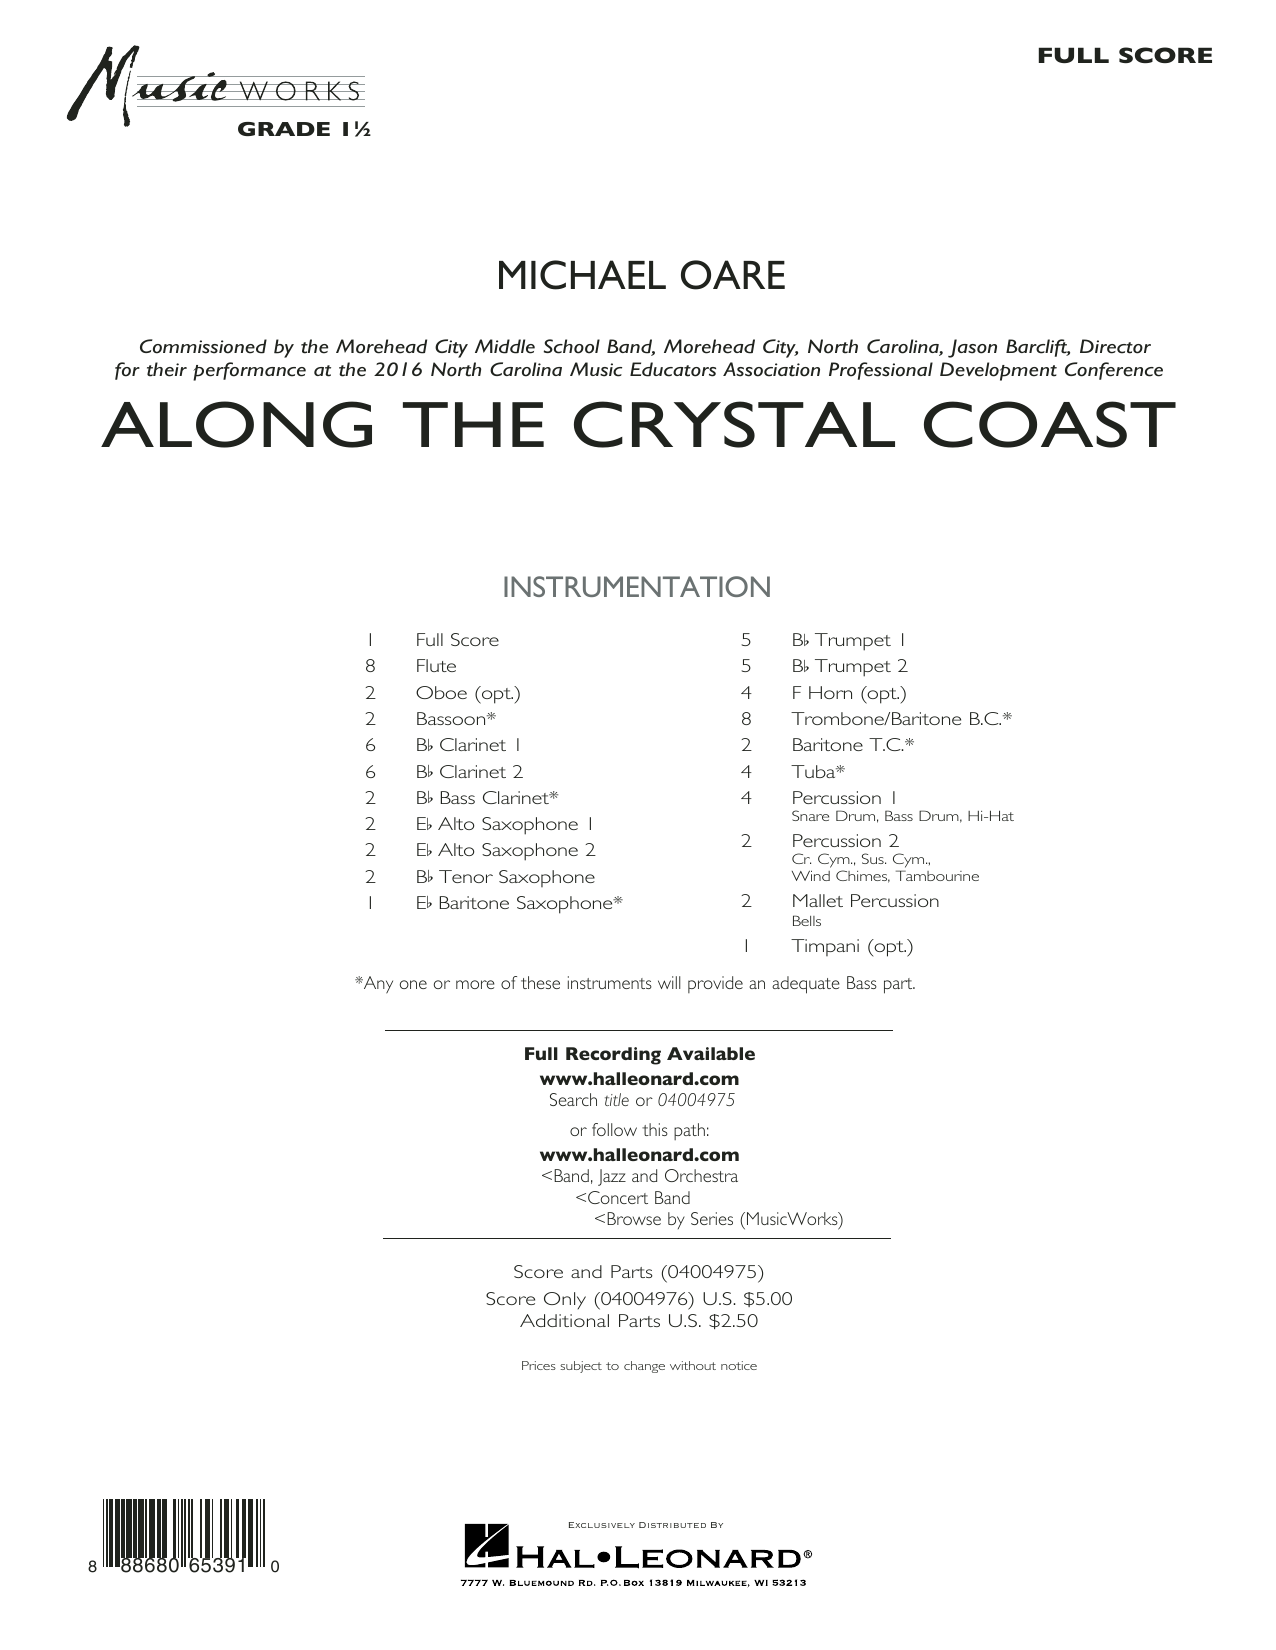 Michael Oare Along the Crystal Coast - Conductor Score (Full Score) sheet music notes and chords. Download Printable PDF.